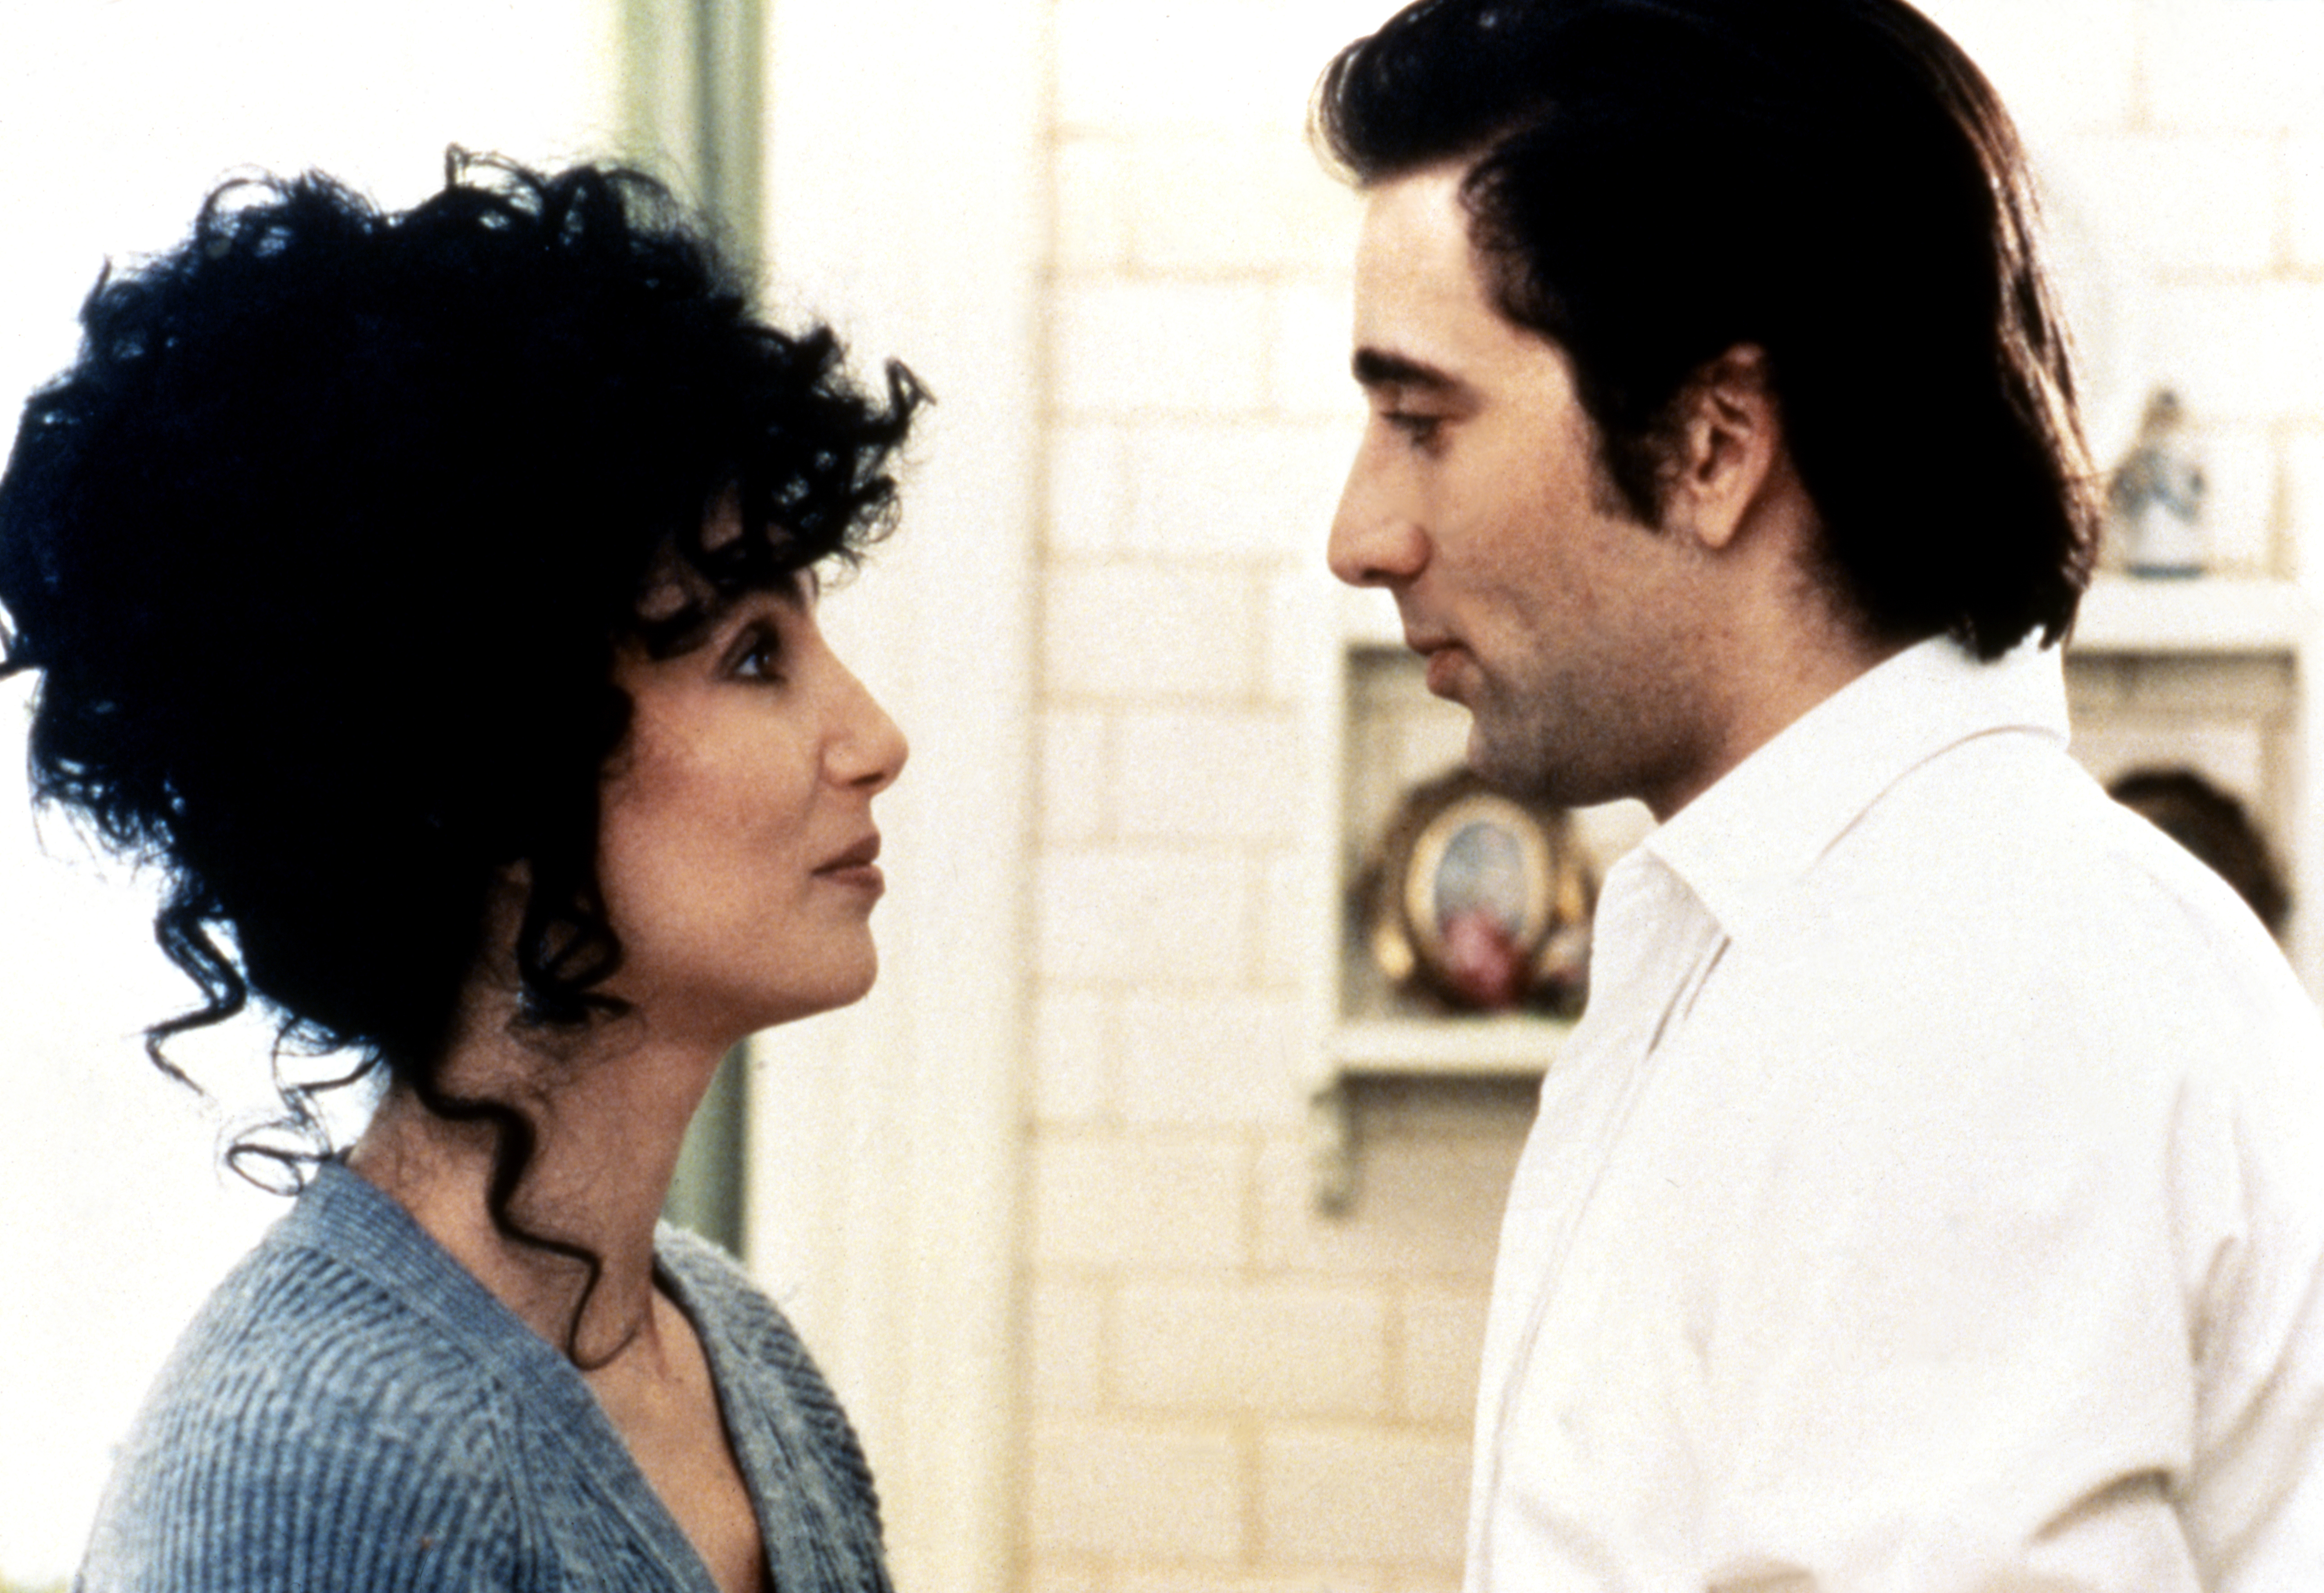 Cher Through The Years - Cher received critical acclaim for her role in Moonstruck opposite Nicolas Cage , which earned her the Oscar for best actress.